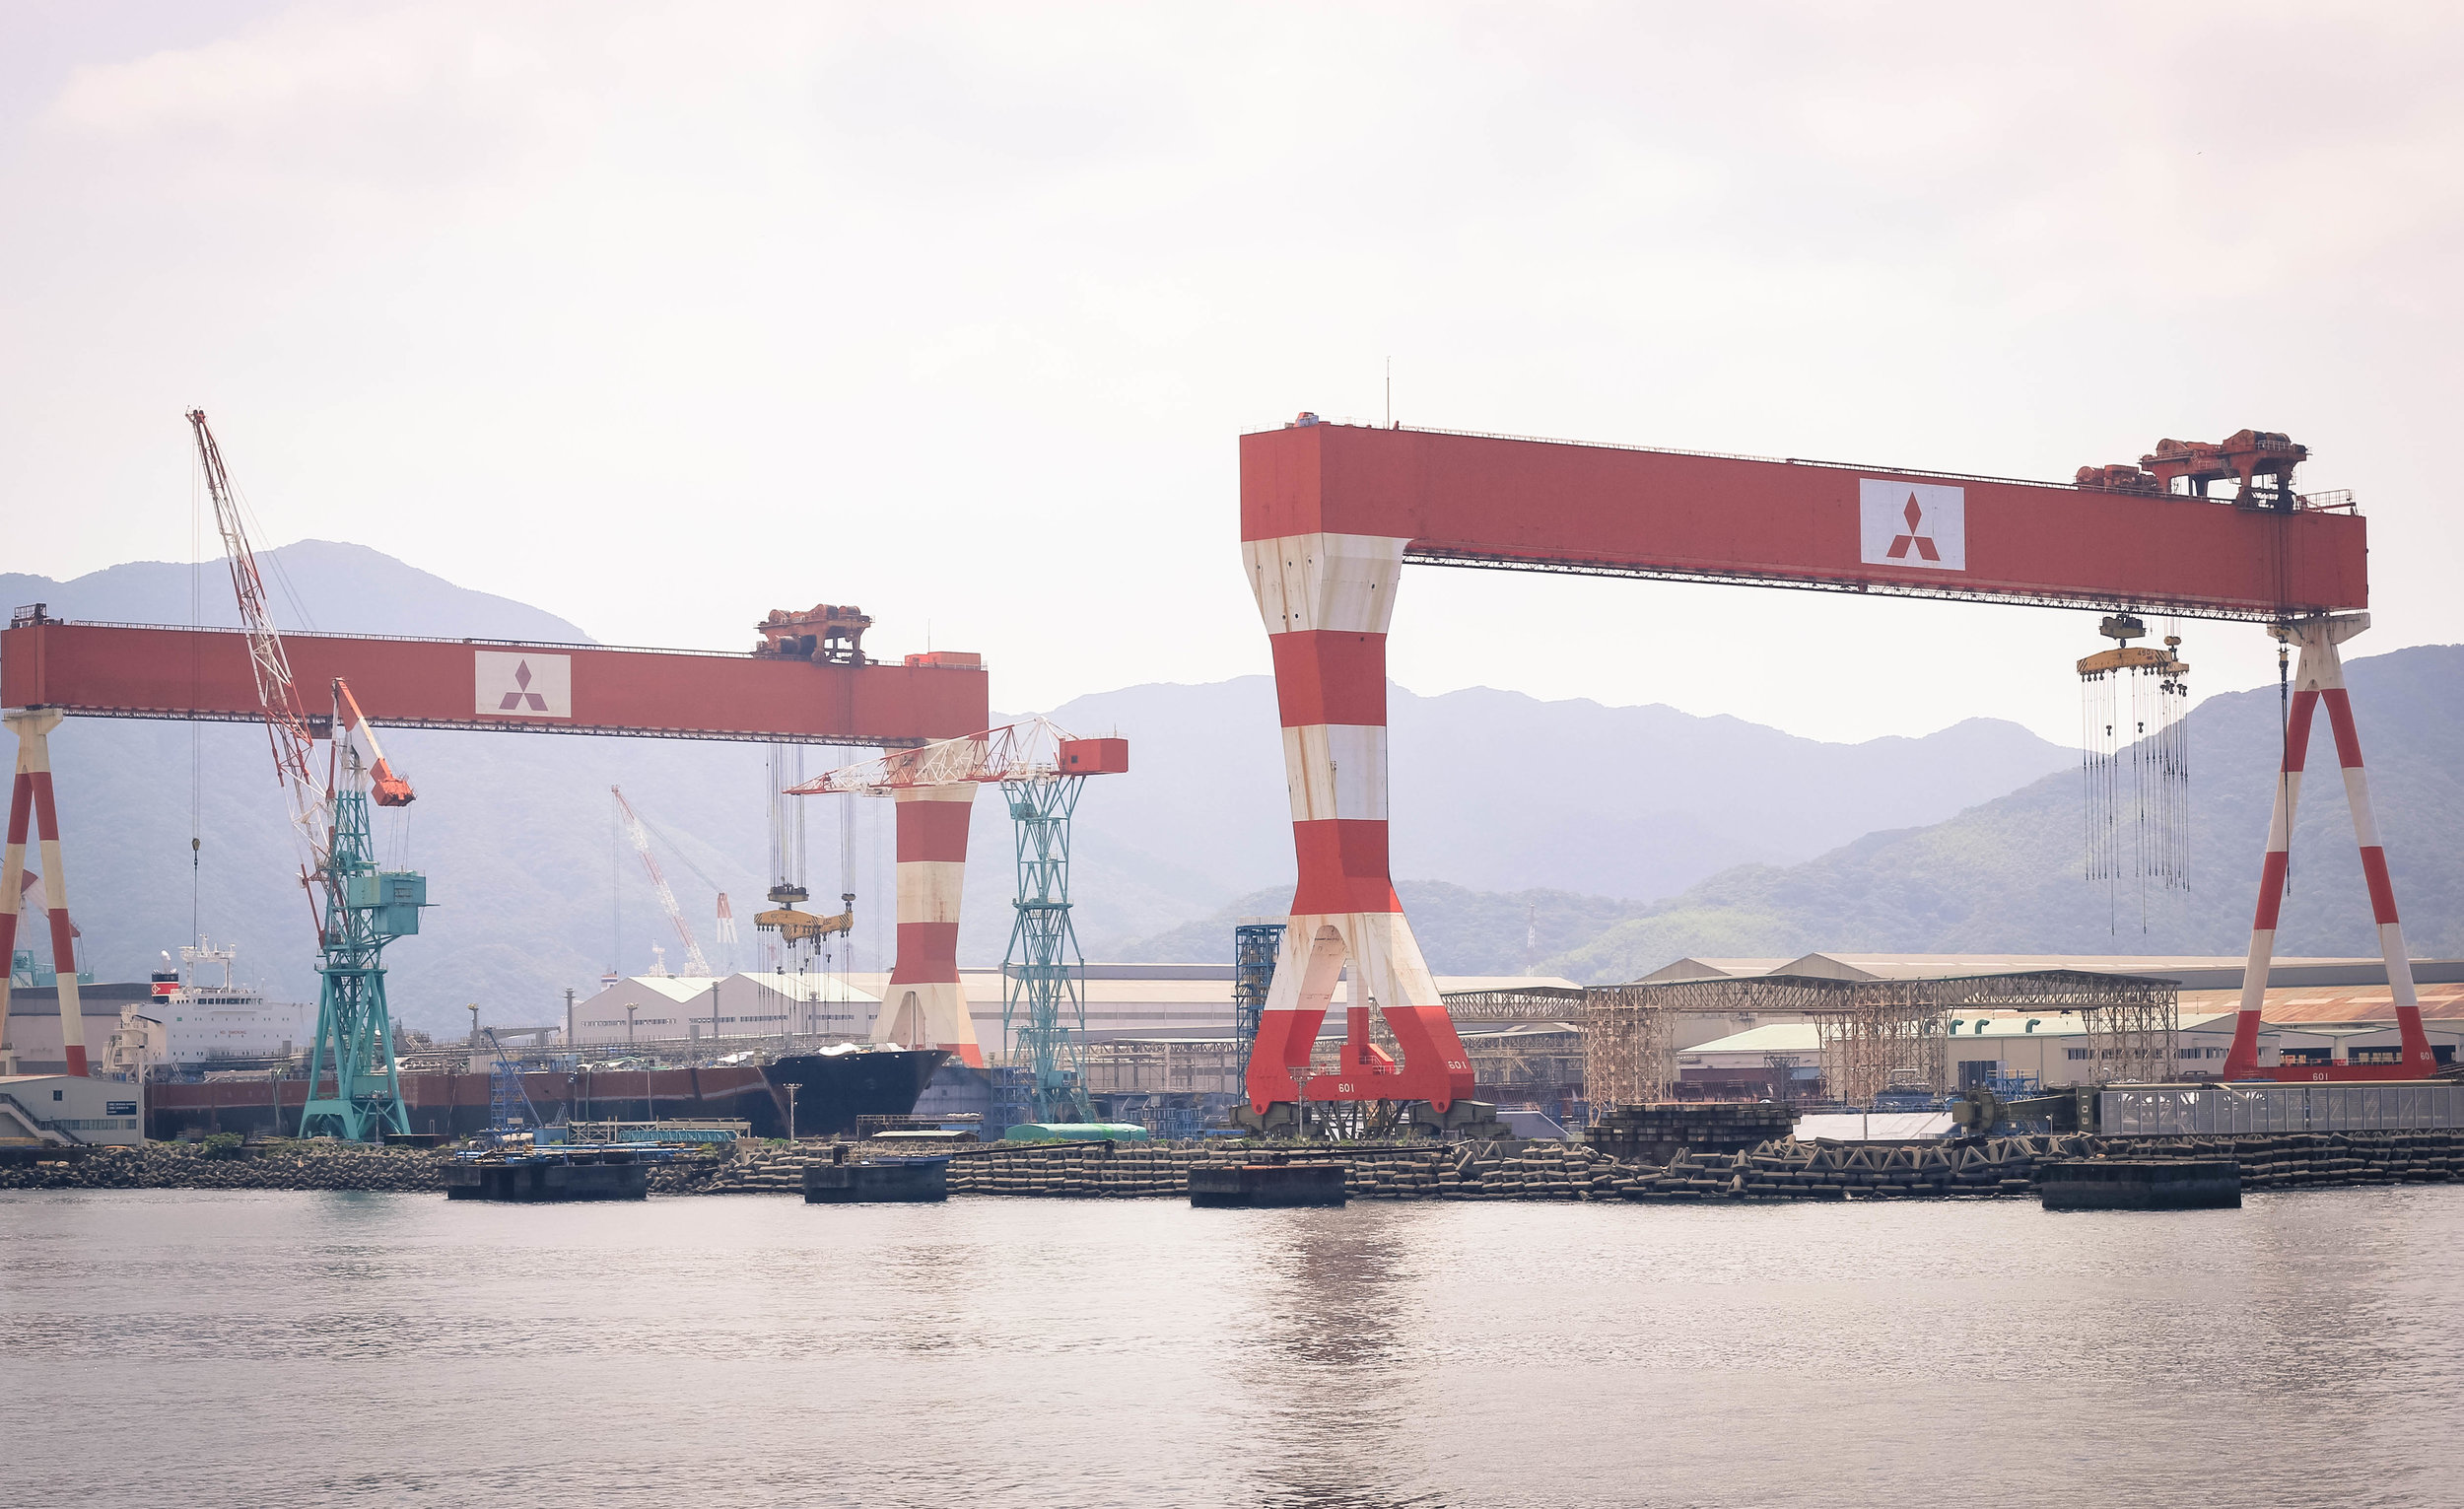 There is a large Mitsubishi presence in Nagasaki and the plant has a very interesting history, developed as Japan's first warship repair facility in the mid 19th century.